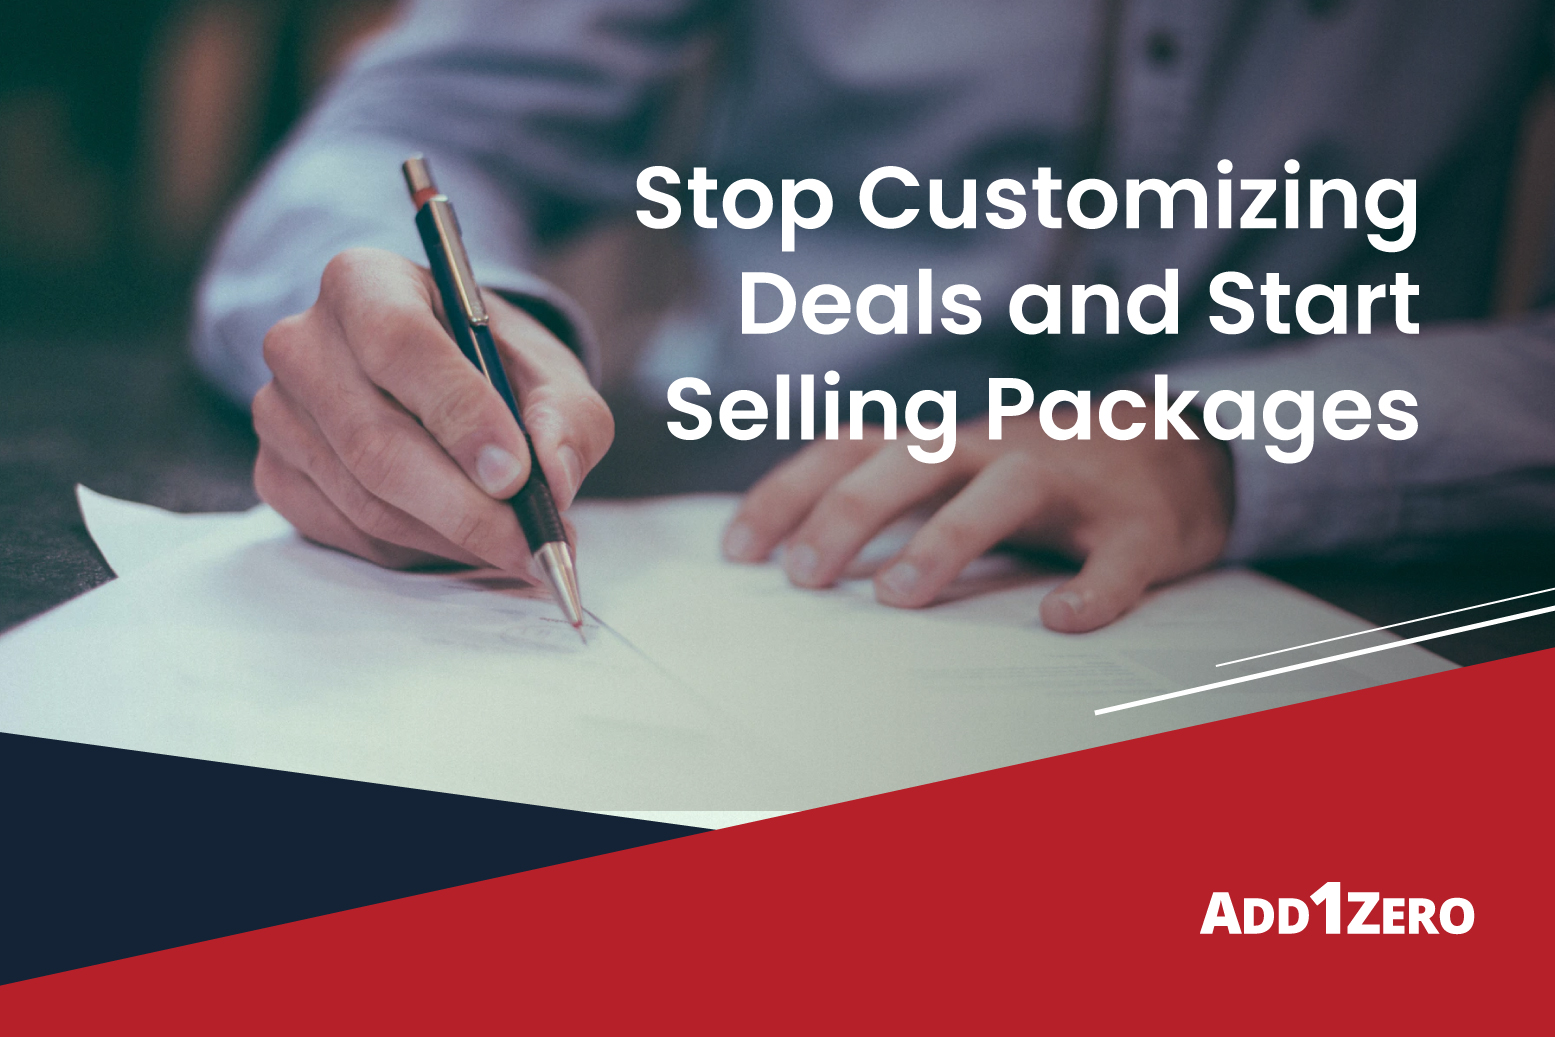 Stop Customizing Deals and Start Selling Packages